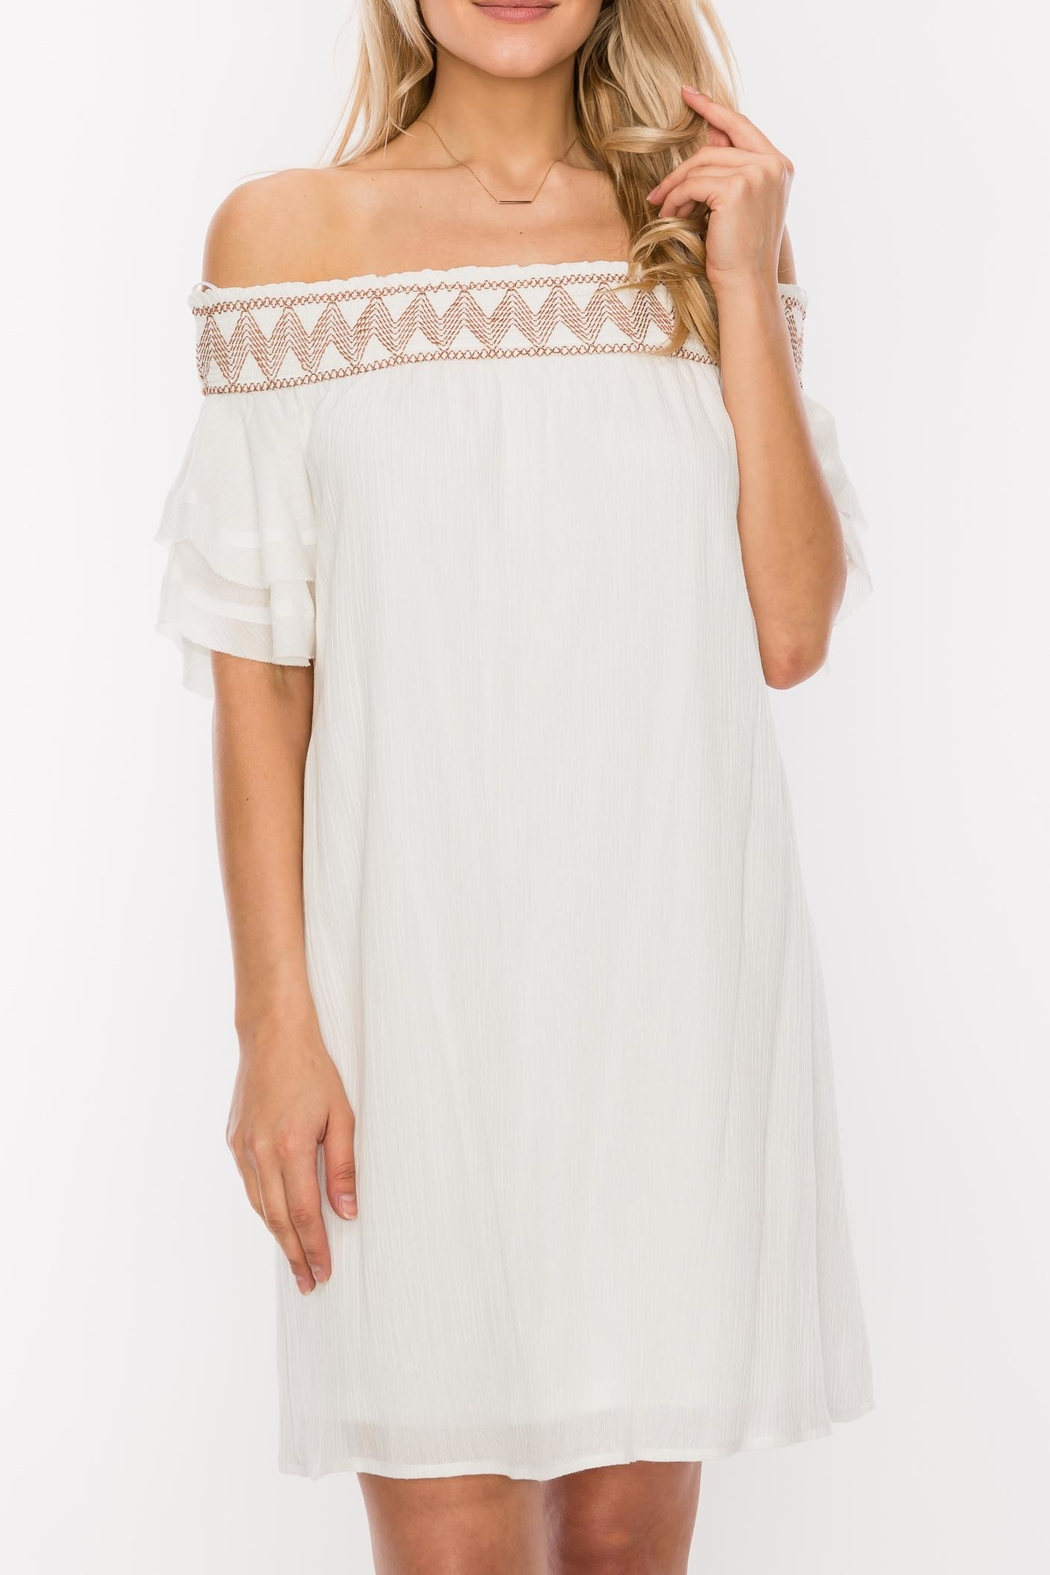 HYFVE Stitch Embroidered Dress - Front Cropped Image